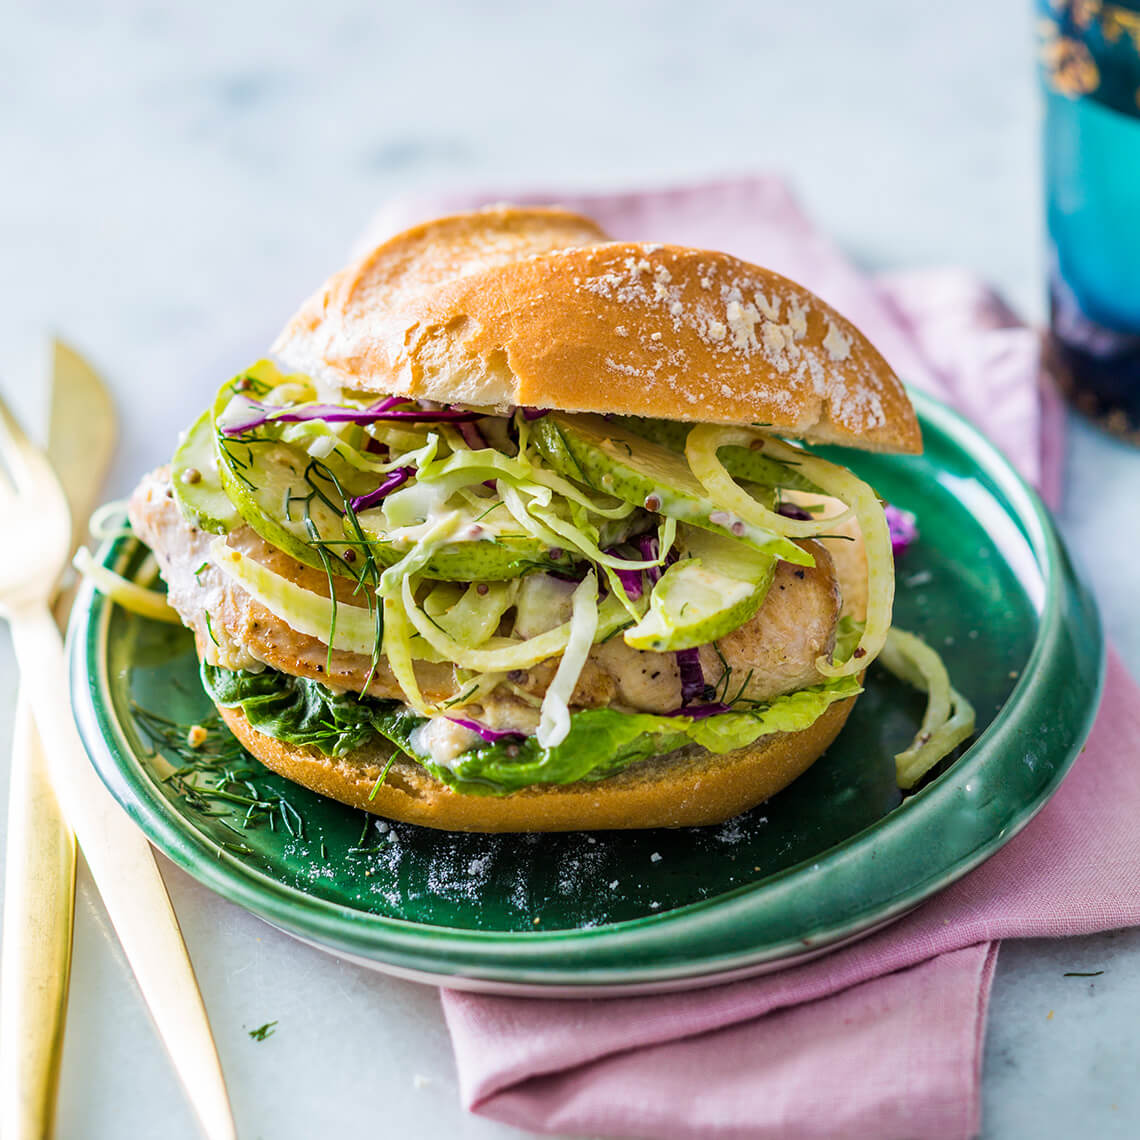 Gorgonzola-stuffed chicken burgers with pickled pear slaw